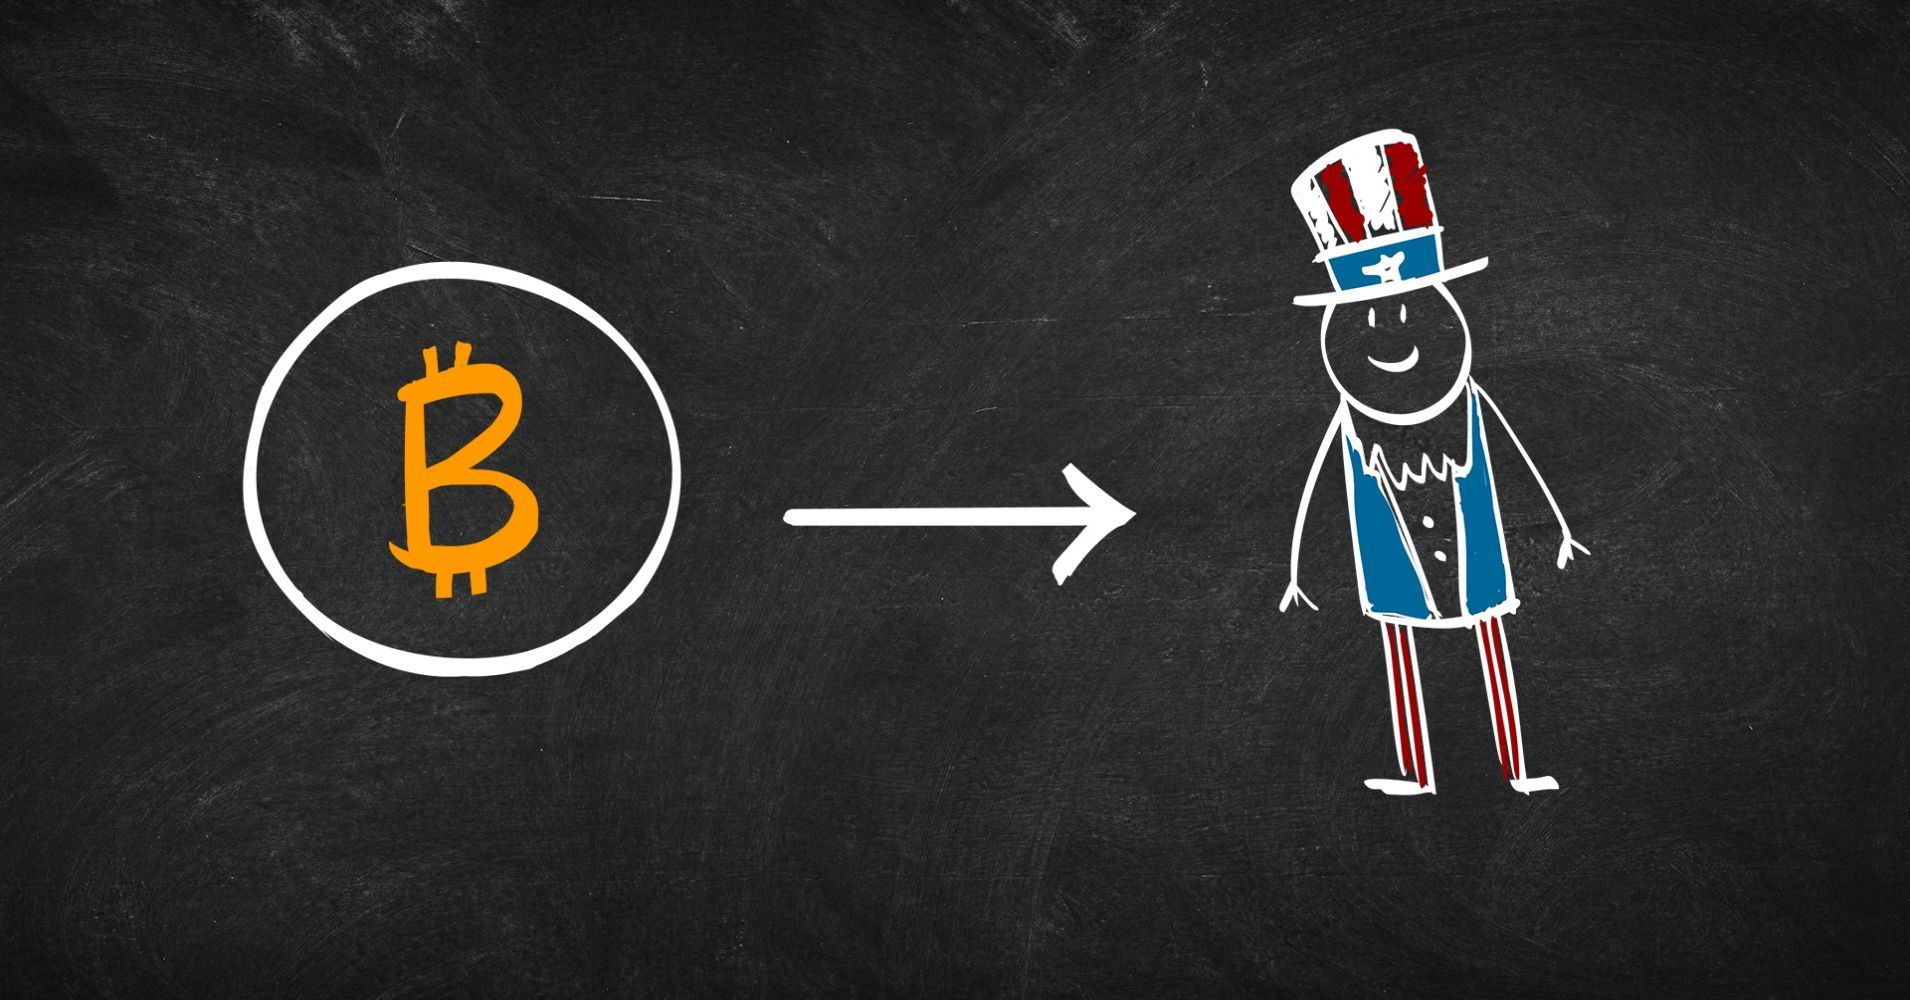 Our site shall tell you about how to better use bitcoin